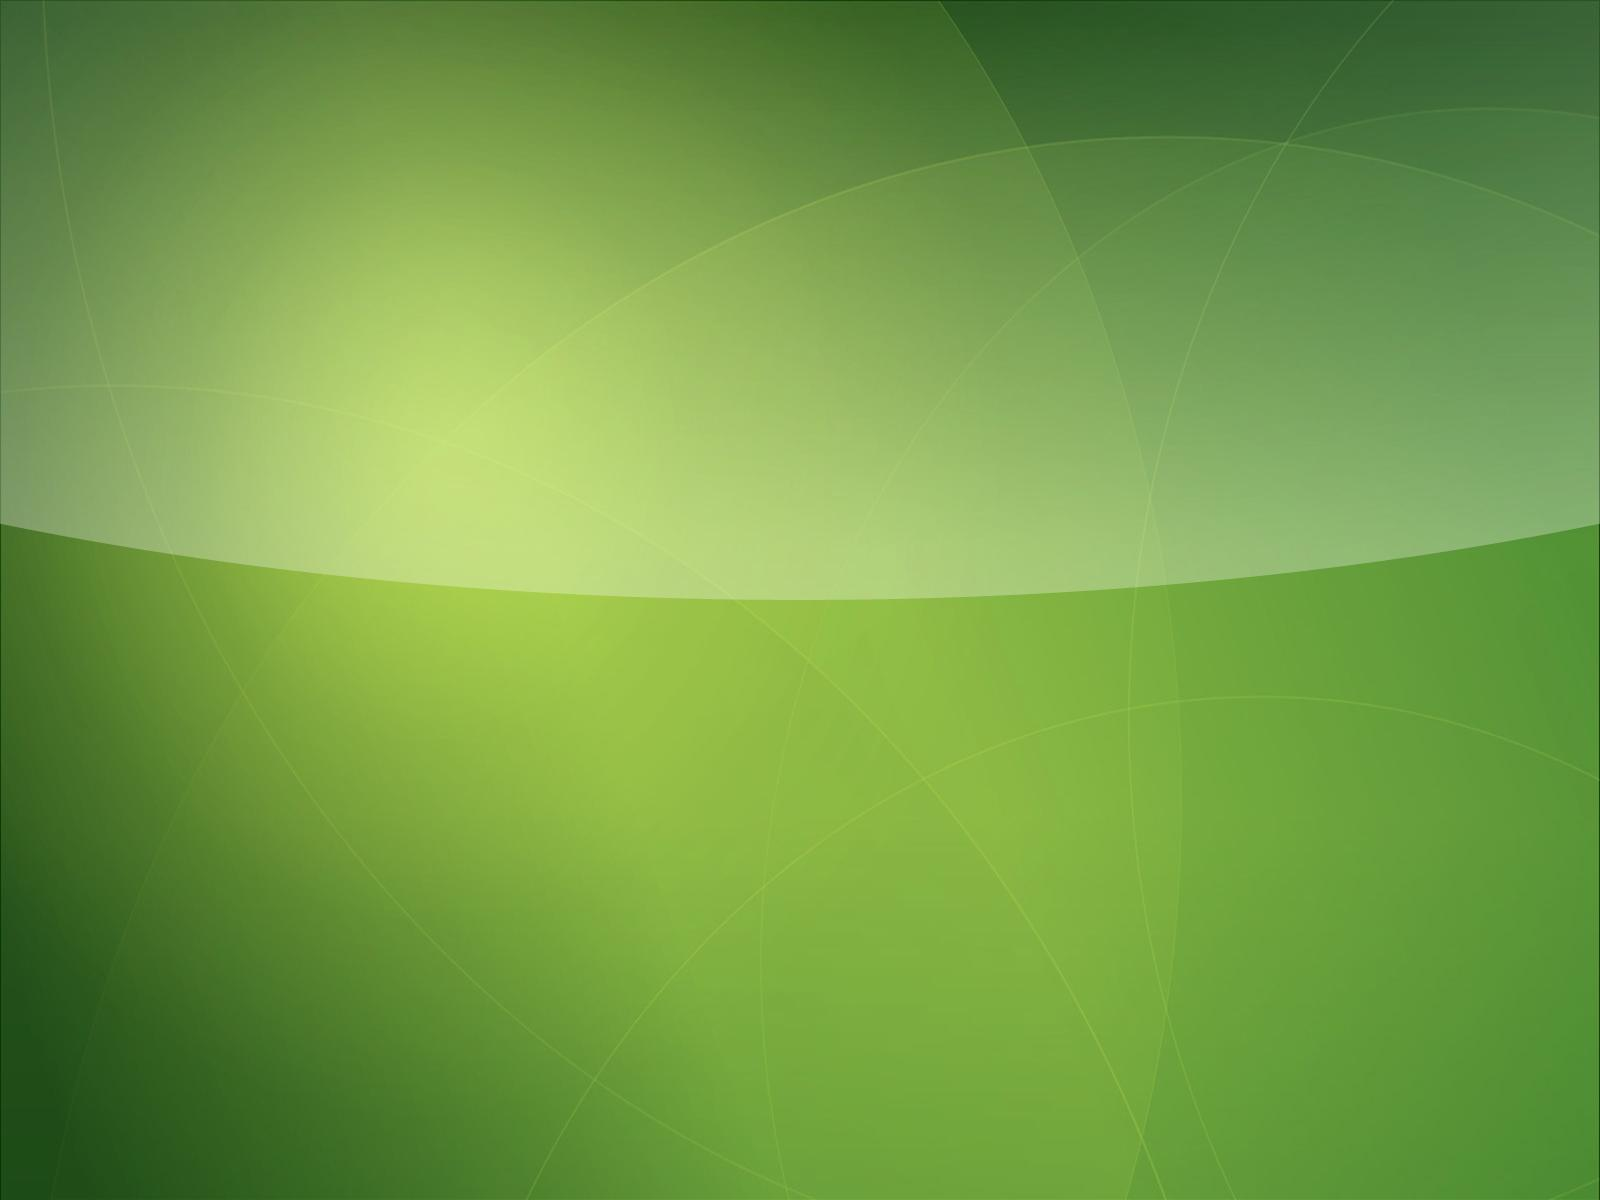 Very Nice Wallpaper For Desktop Green  very nice wallpaper